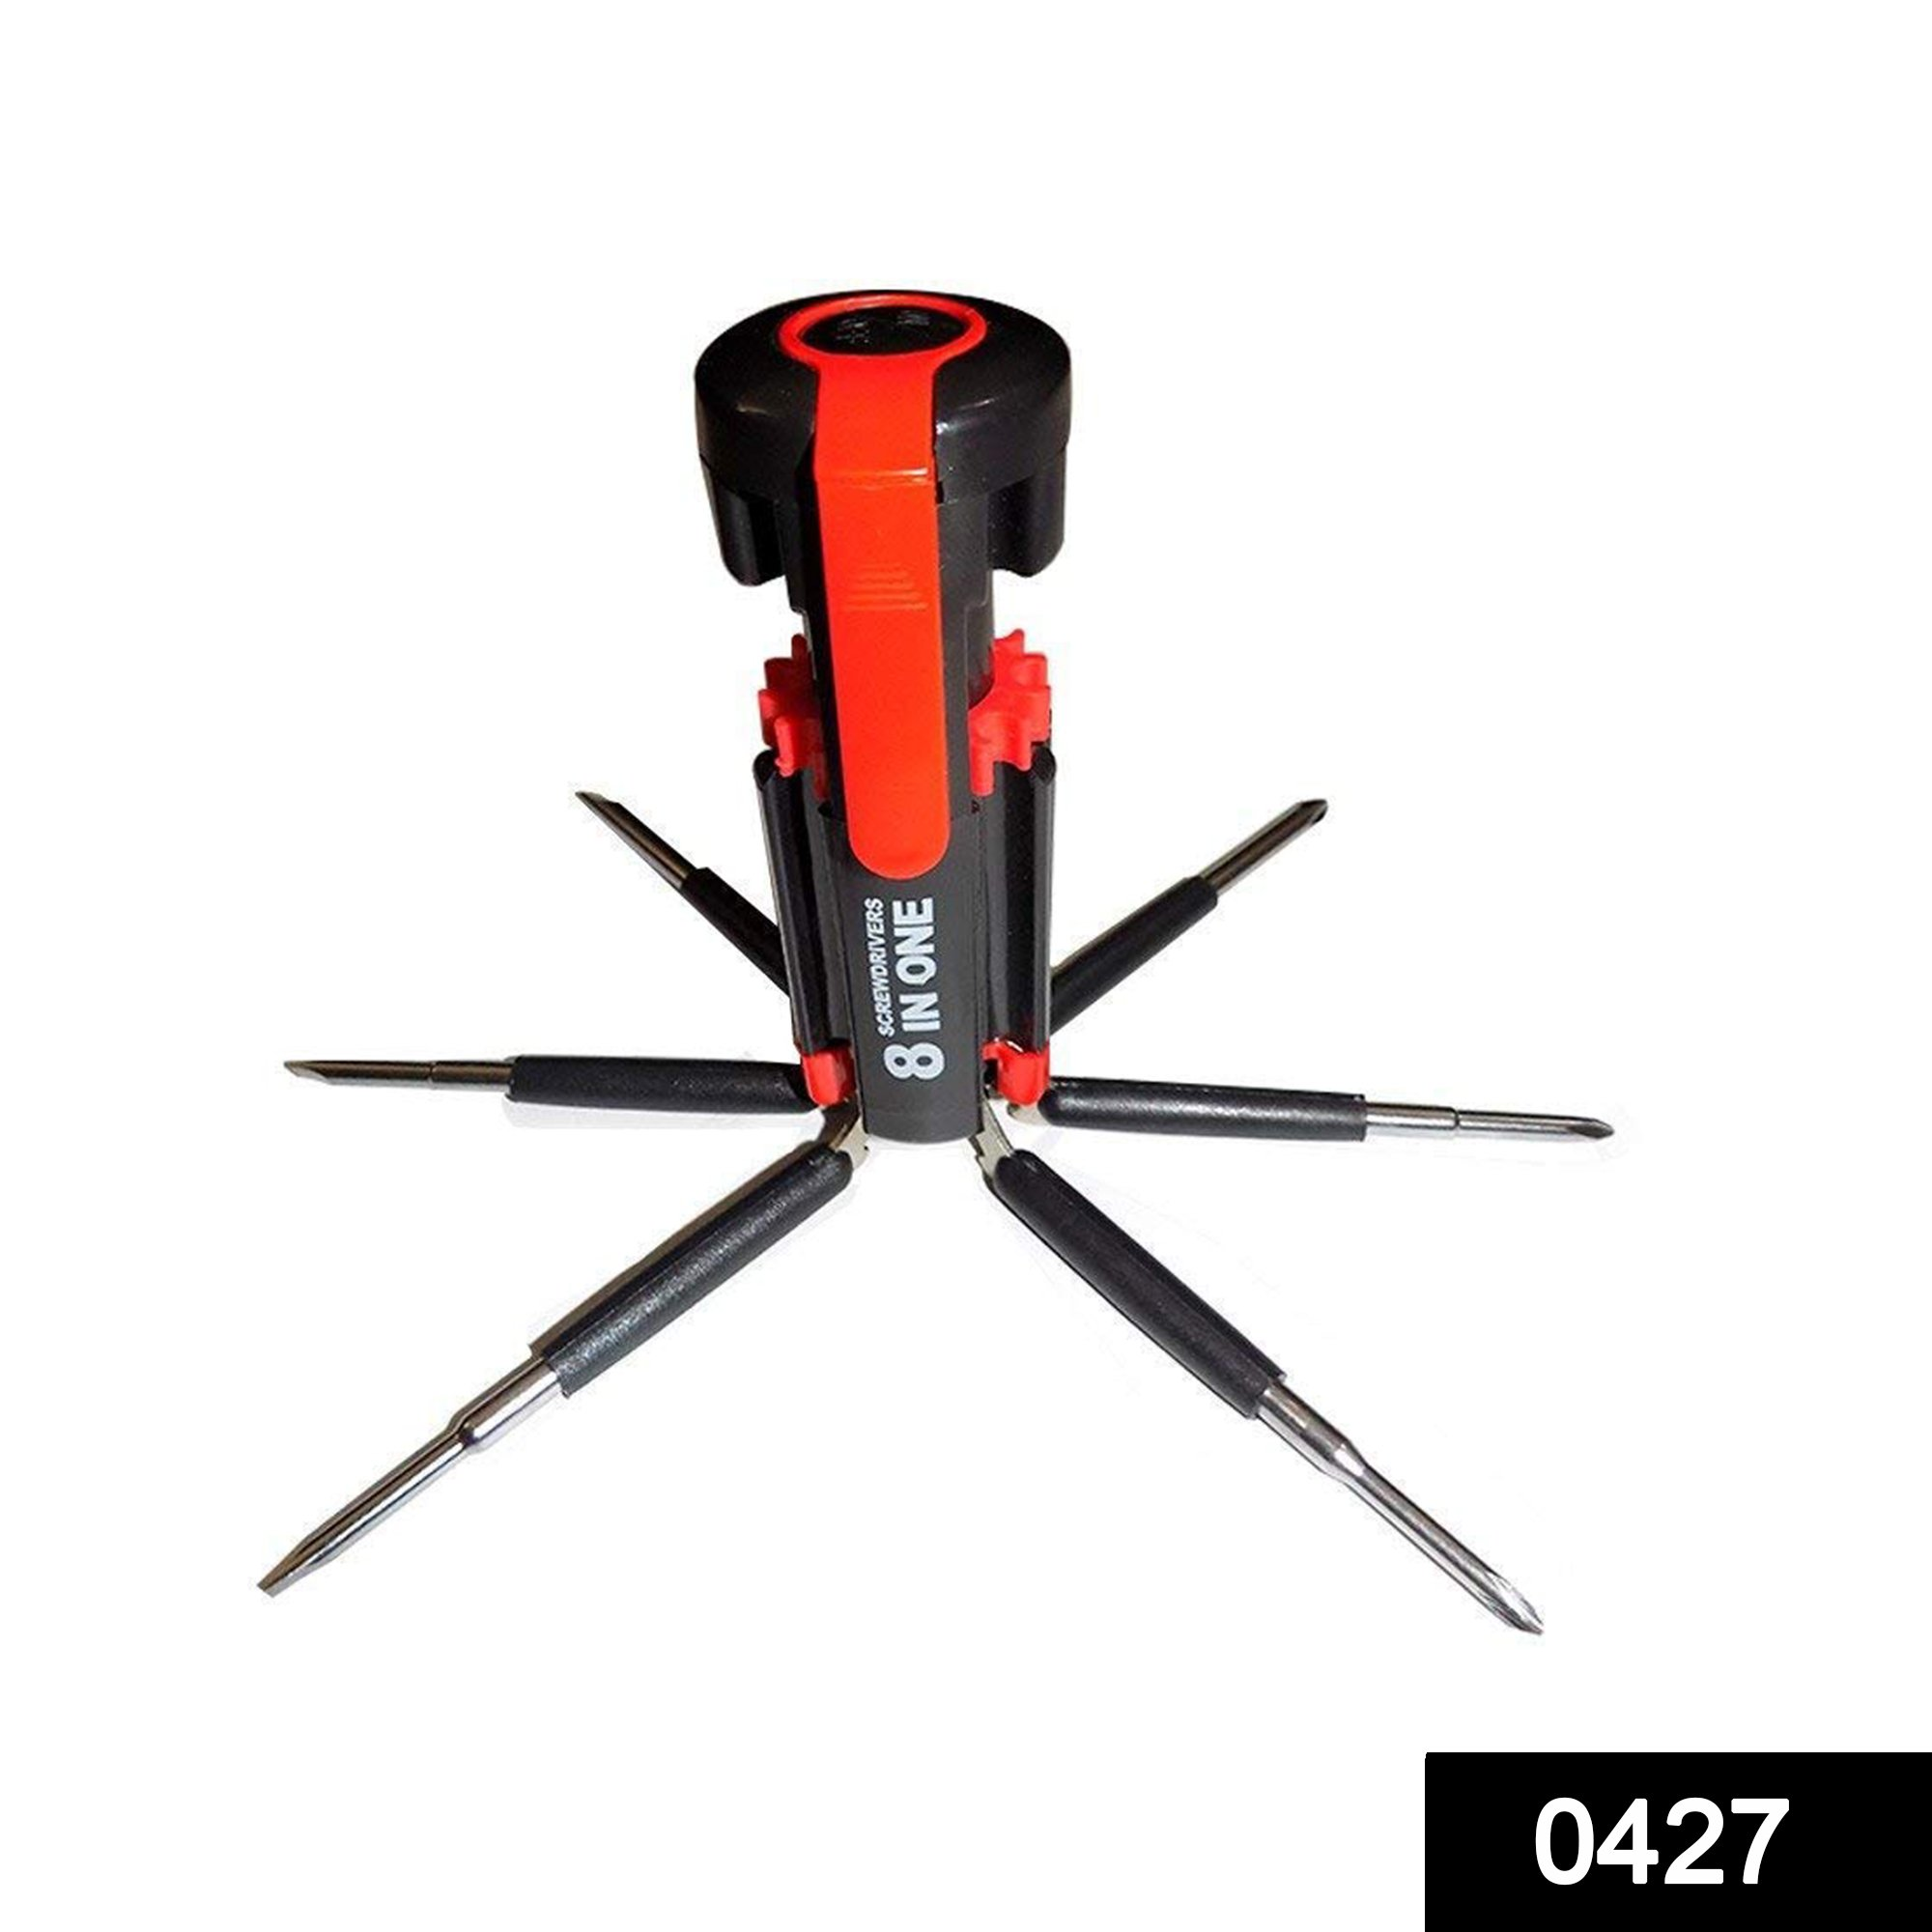 0427 08 in 1 Multi-Function Screwdriver Kit with LED Portable Torch -